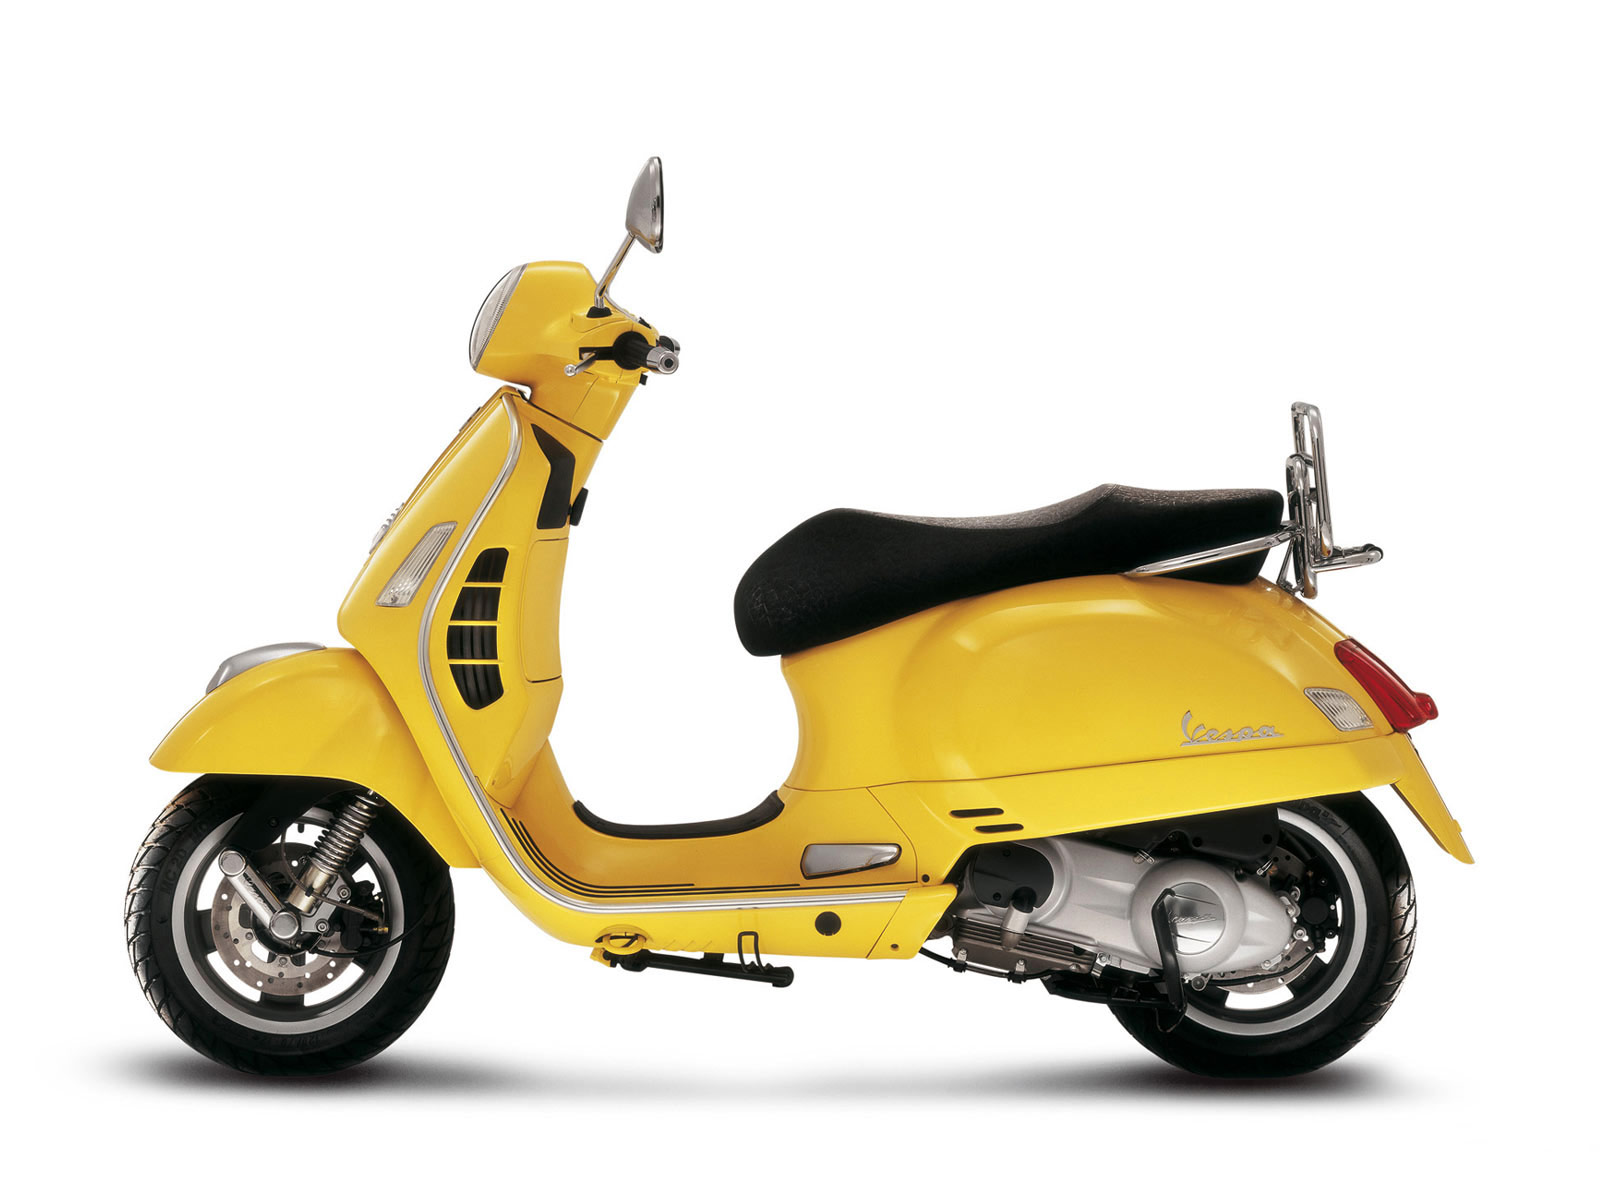 accident lawyers information 2008 vespa gts 125 scooter pictures. Black Bedroom Furniture Sets. Home Design Ideas